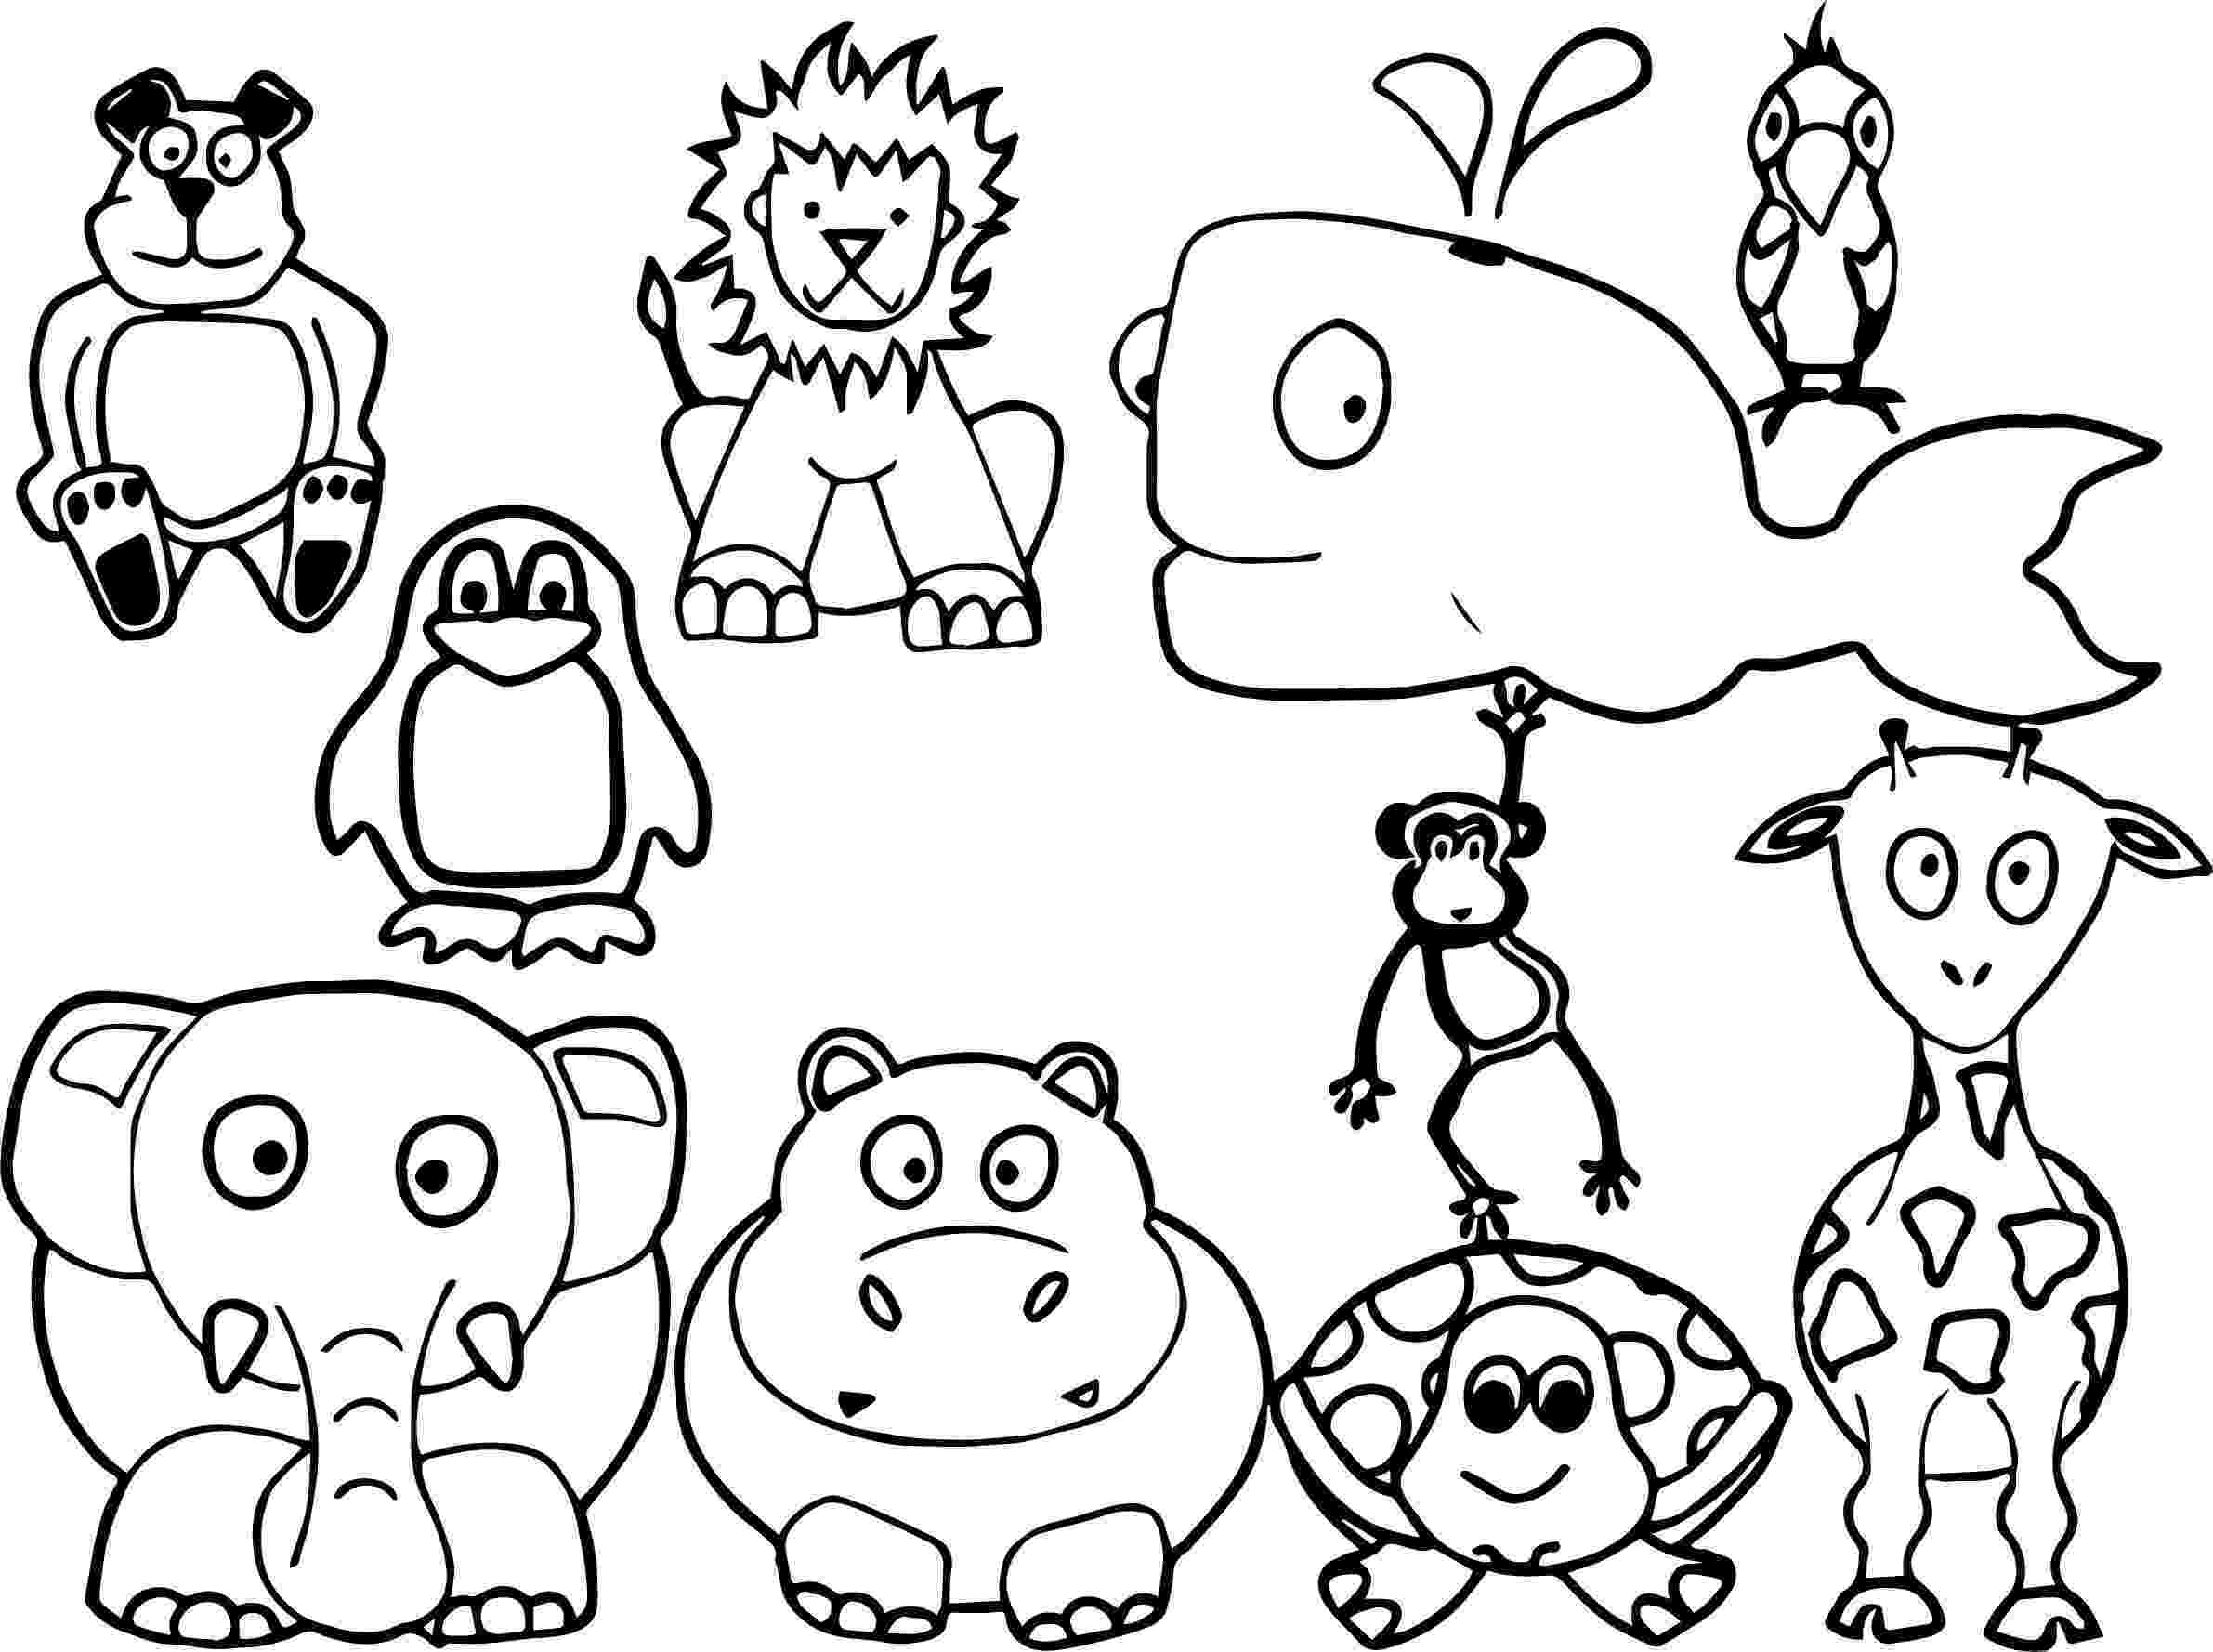 animal coloring pages to print lisa frank animals coloring pages download and print for free animal print coloring to pages